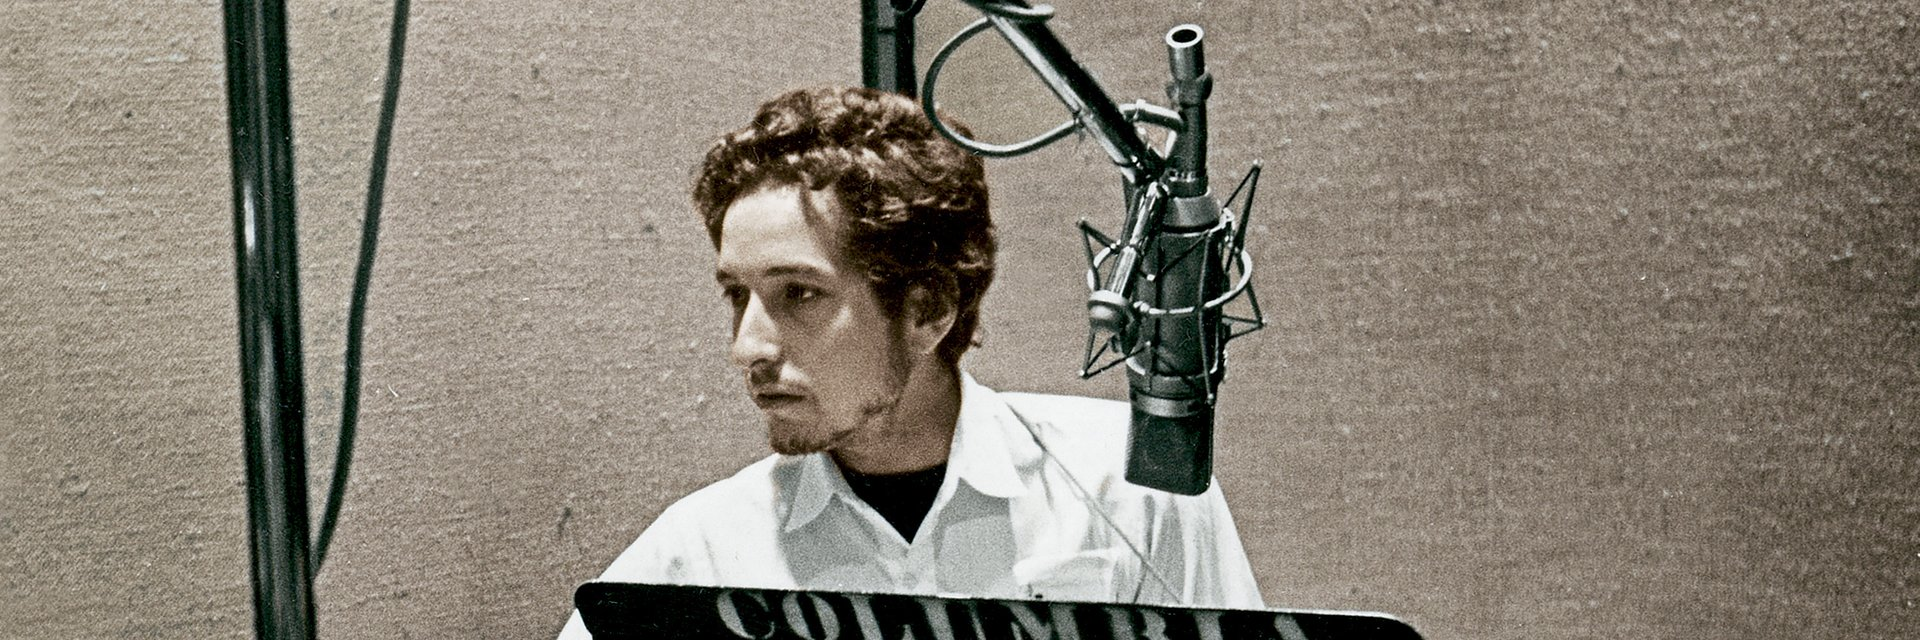 """Premiera """"Bob Dylan - 1970 (50th Anniversary Collection)"""" 26 lutego 2021 r."""